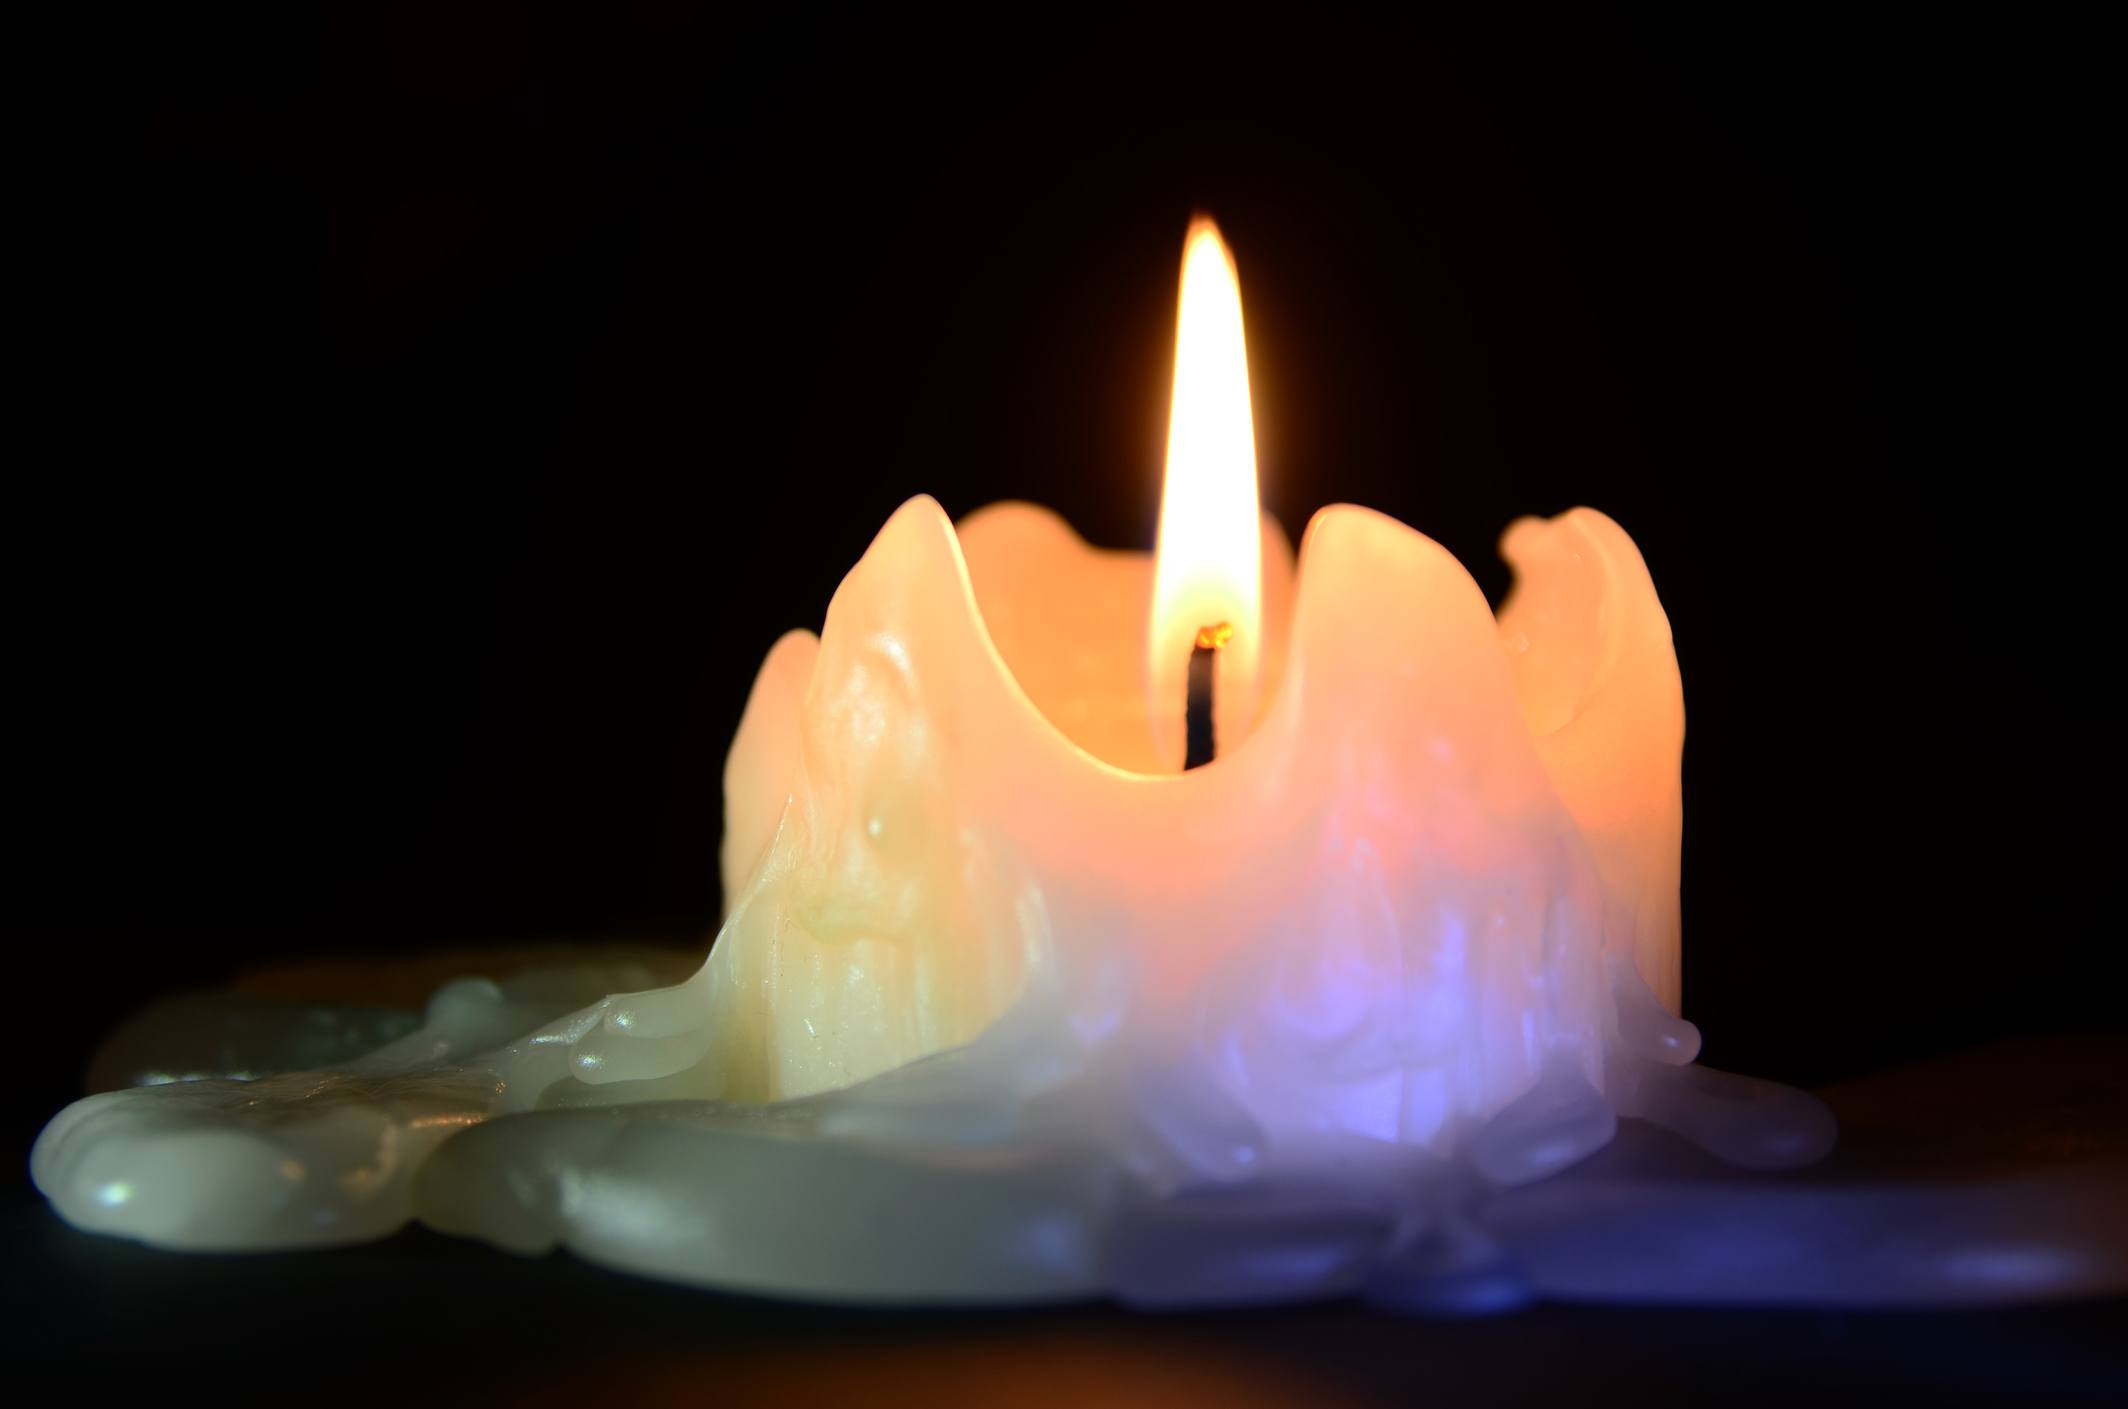 melted candle